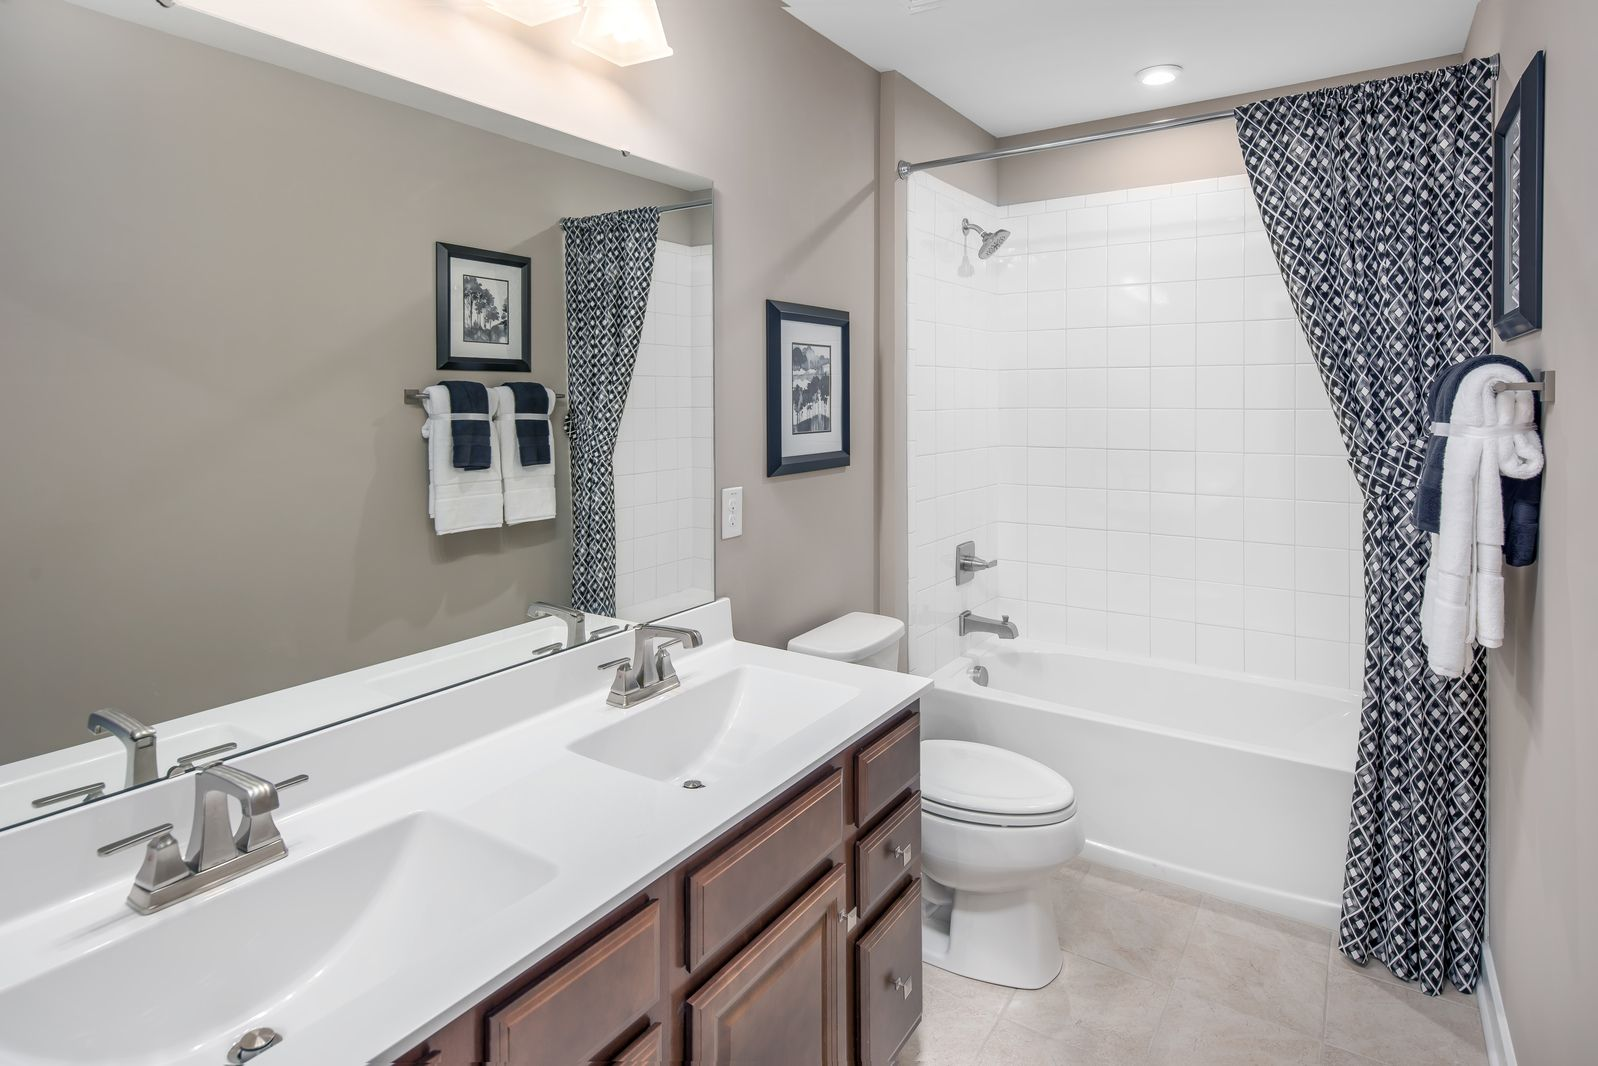 Bathroom featured in the Hudson By Ryan Homes in Columbia, SC